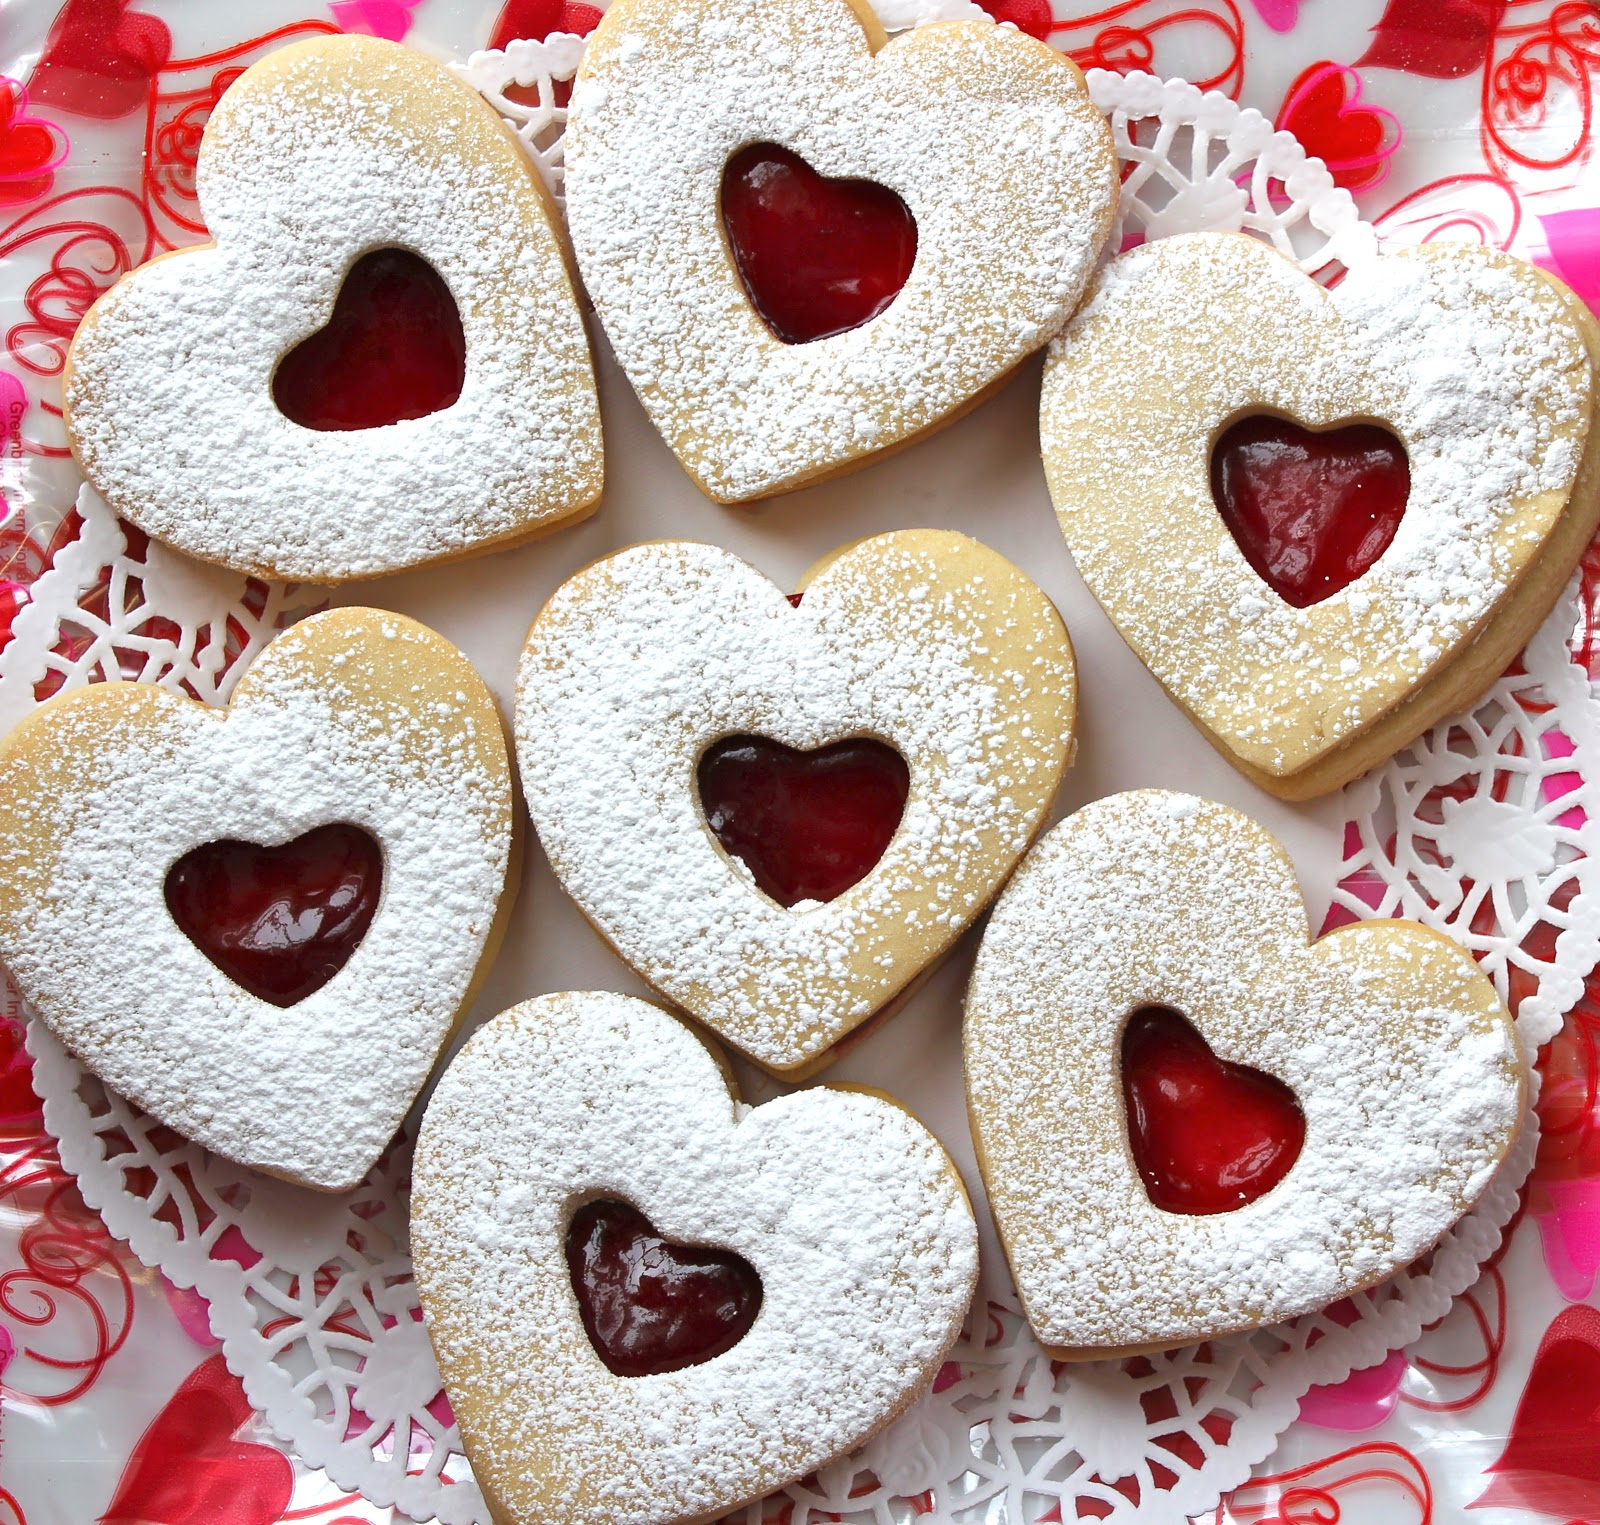 Chelsea's Choice: Raspberry Almond Linzer Cookies